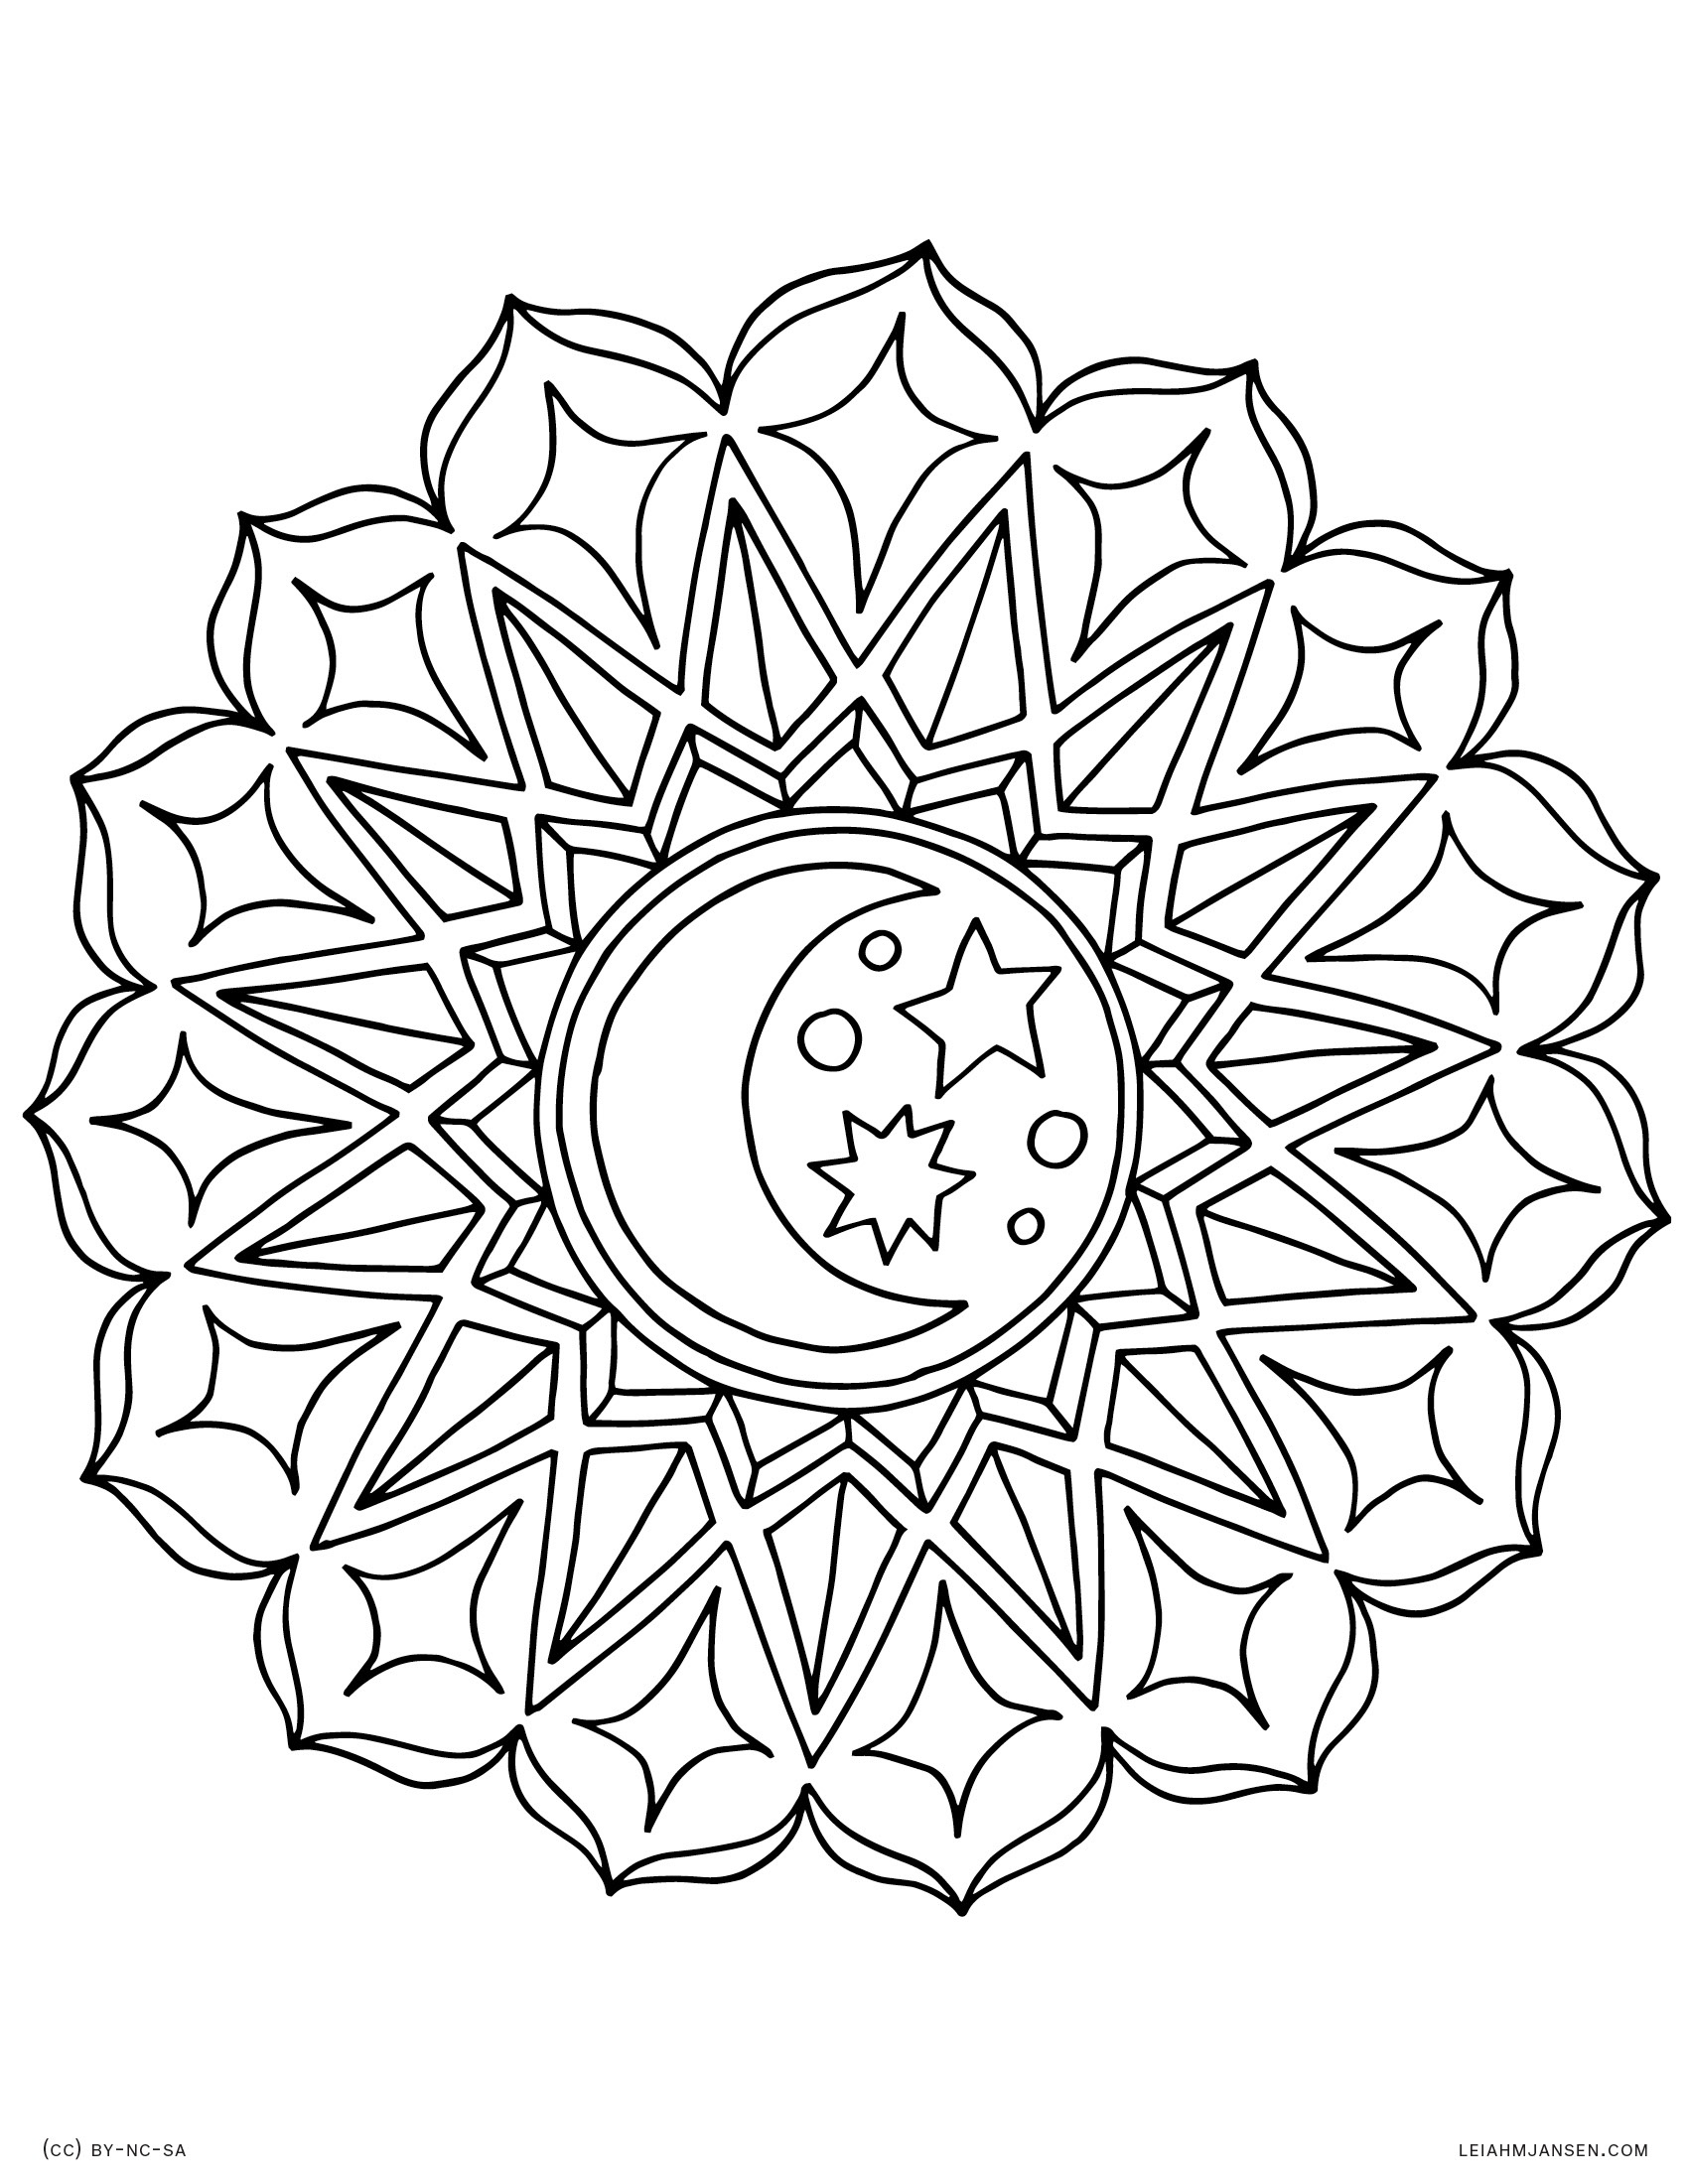 Coloring Pages - Free Printable Coloring Pages